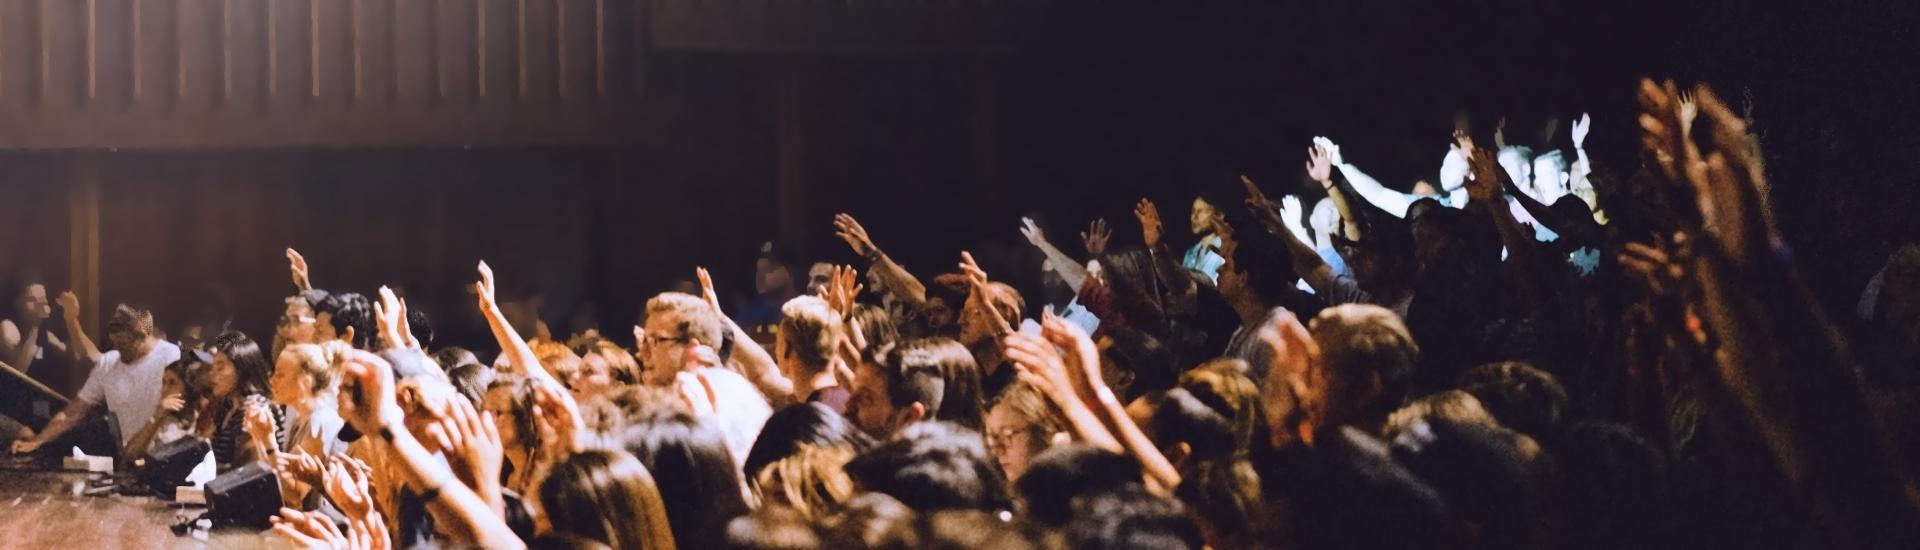 Photo of a crowd with hands raised